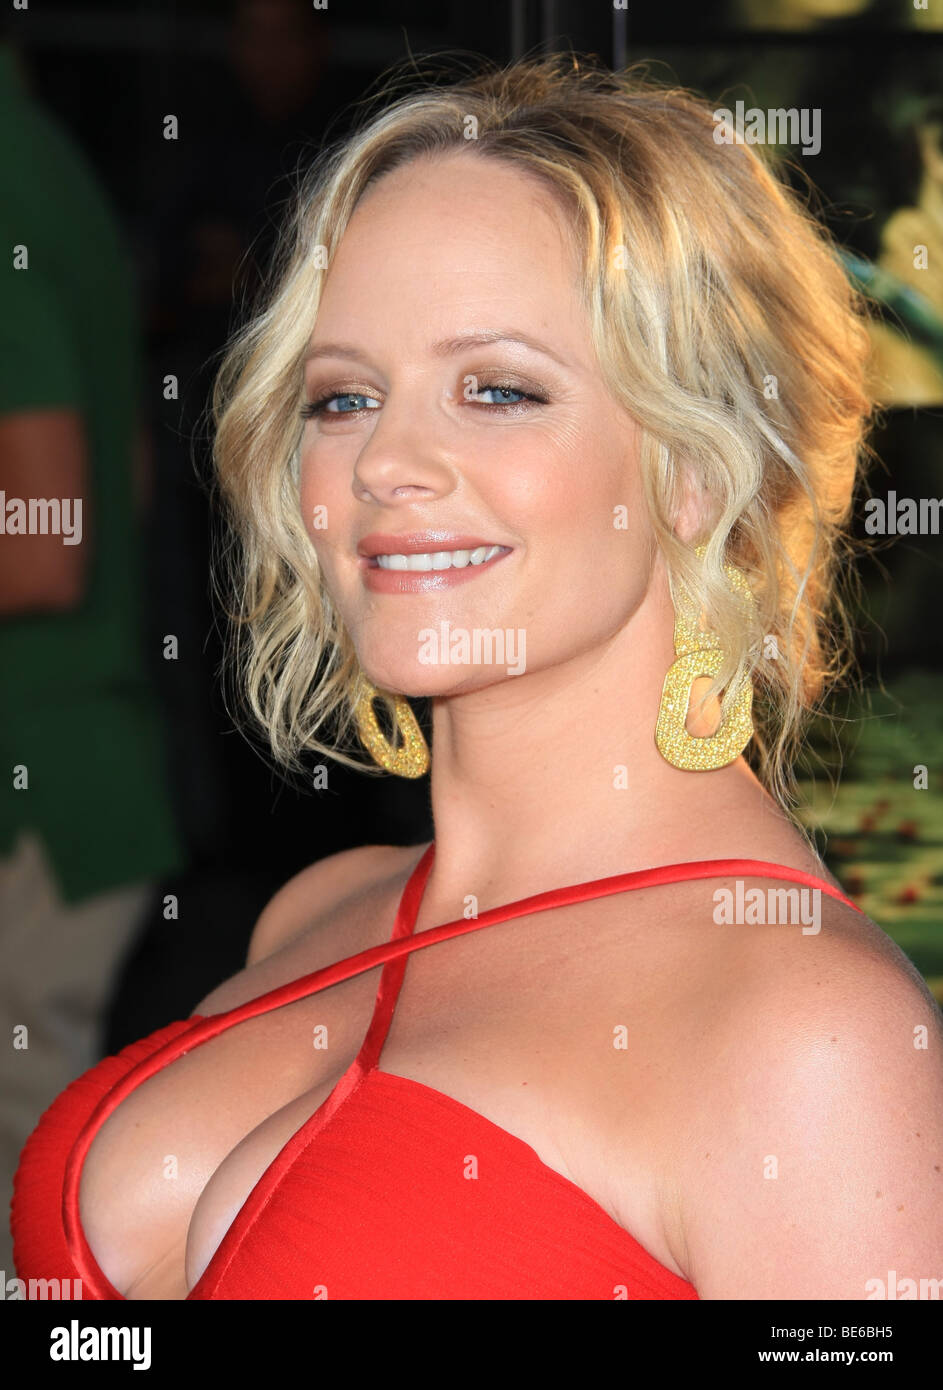 Marley Shelton Marley Shelton new pictures